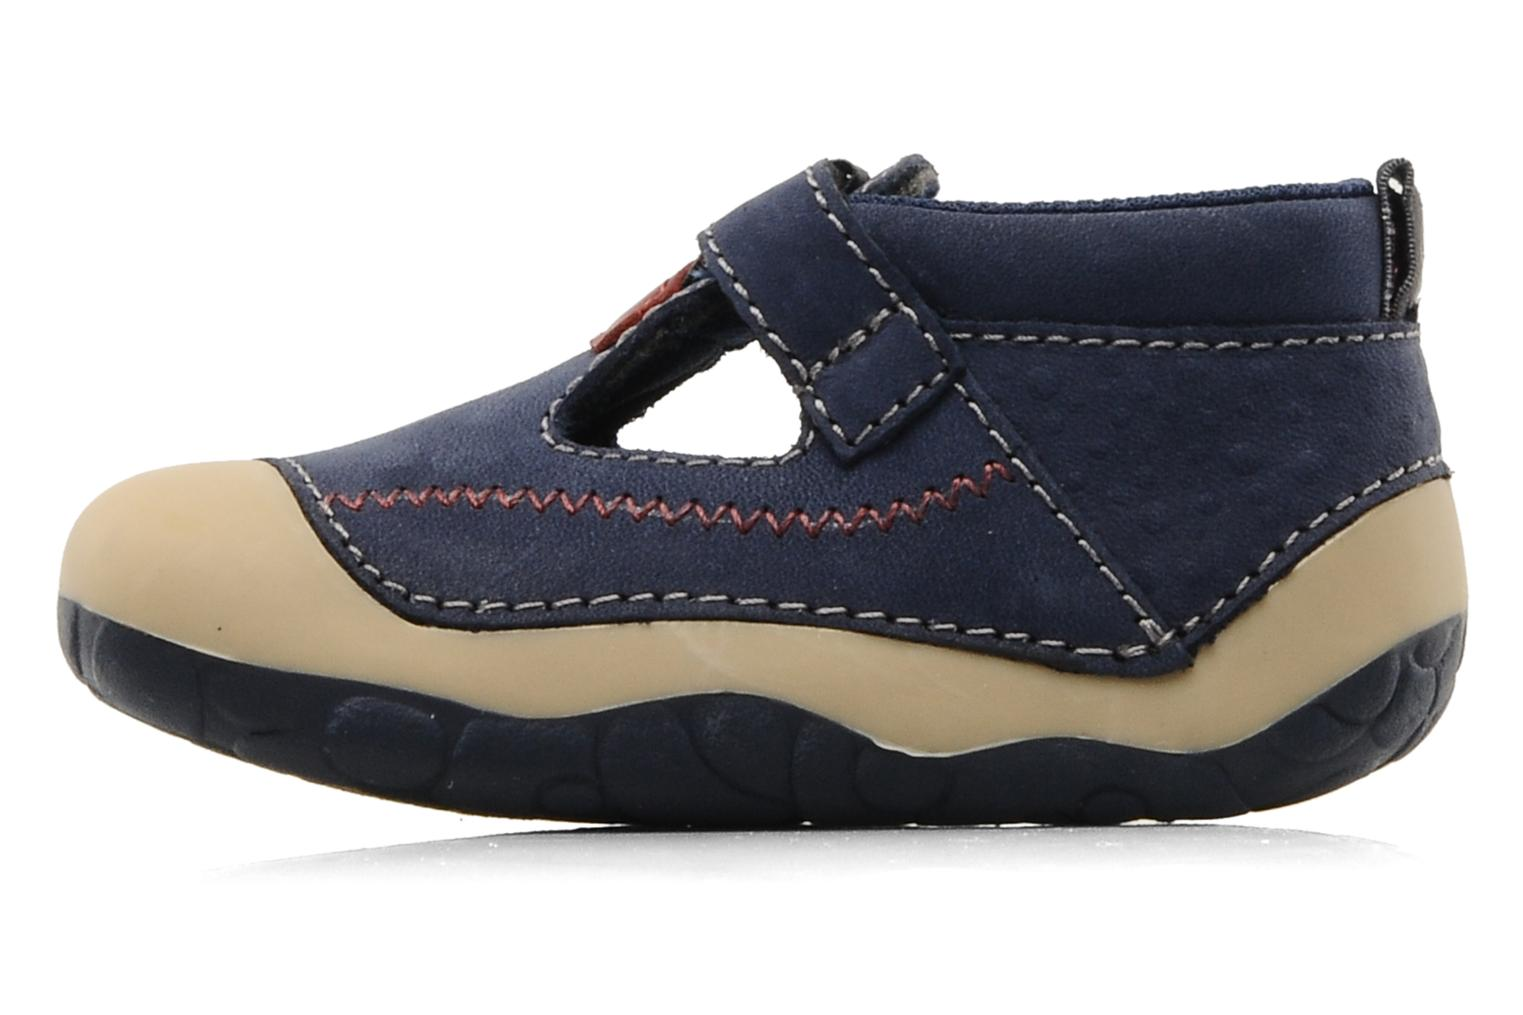 Tiny Navy nubuck